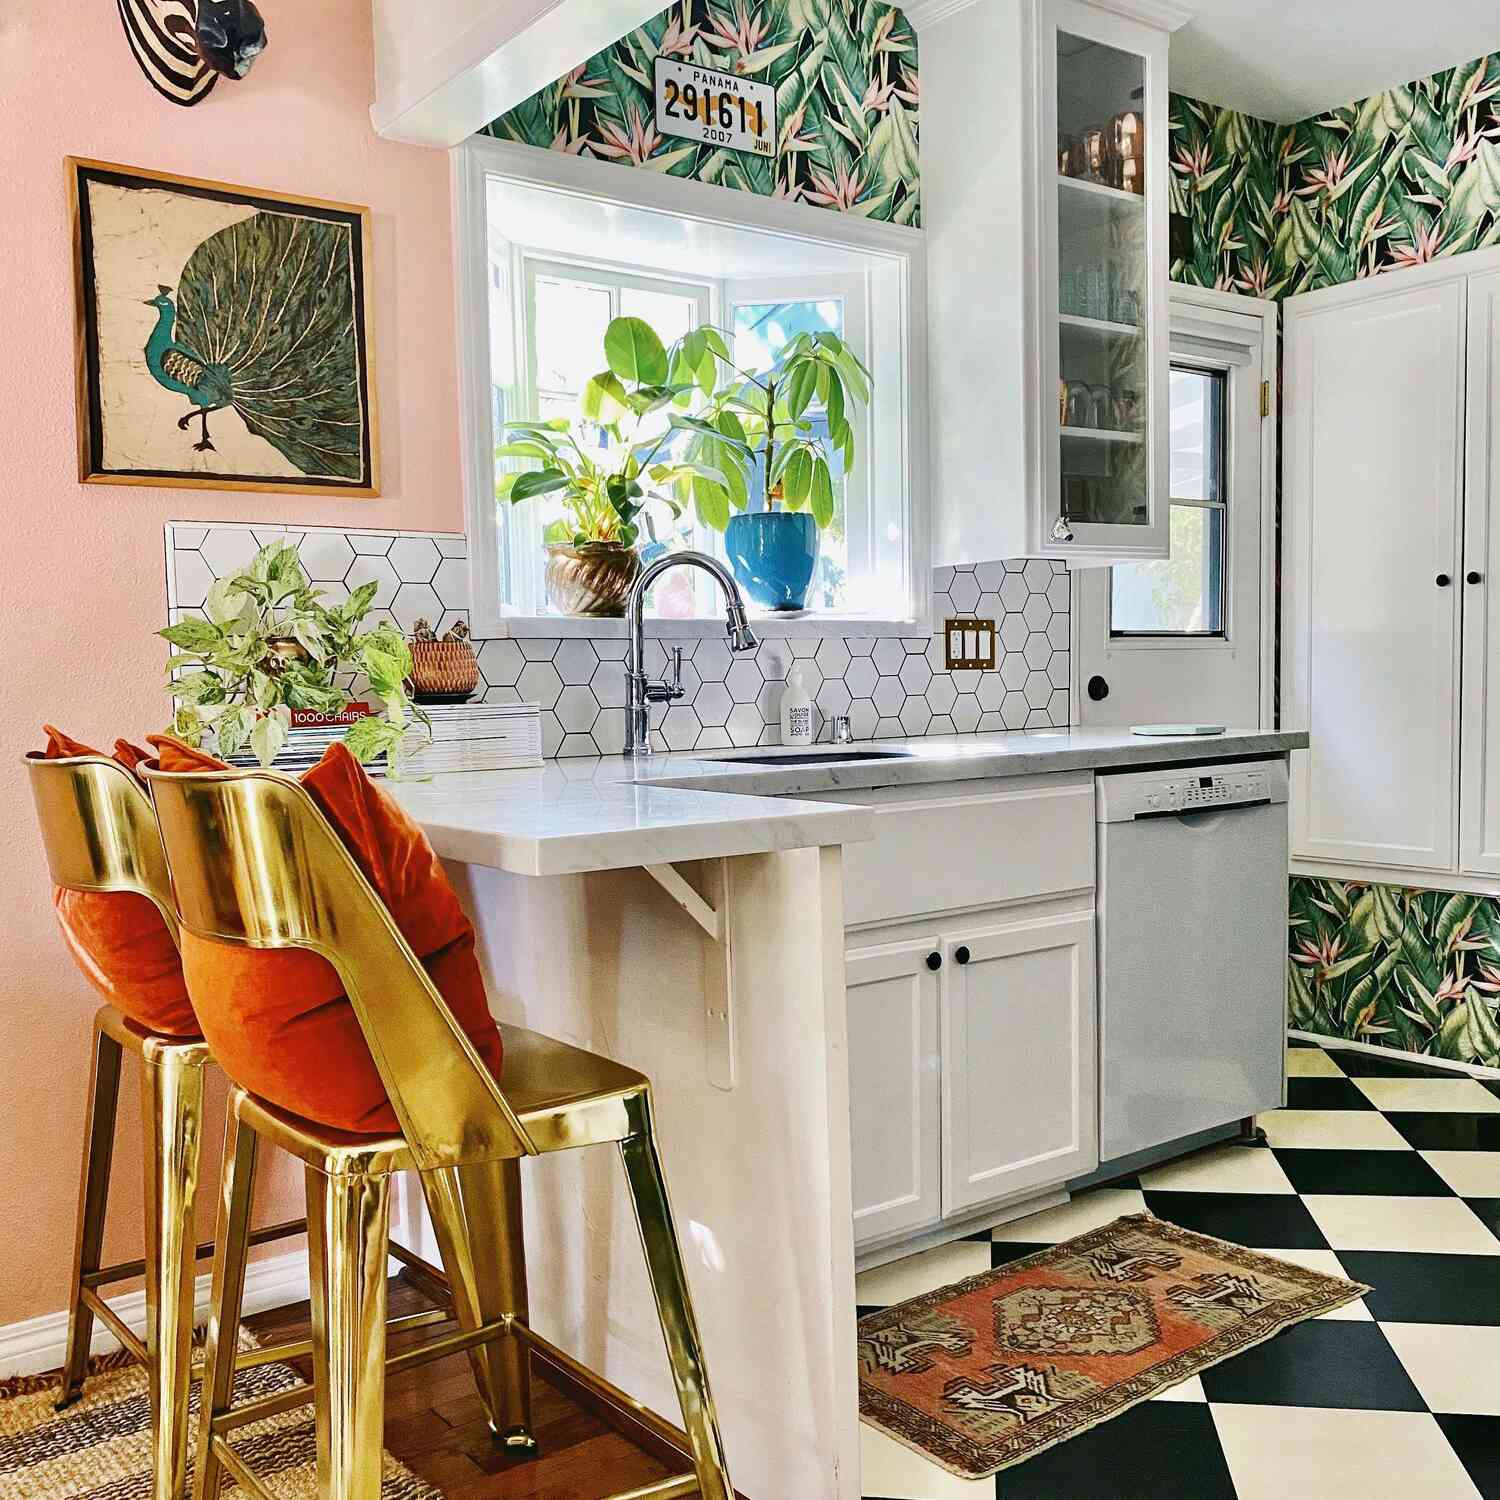 Small kitchen with graphic wallpaper, metallic stools, and pink walls.